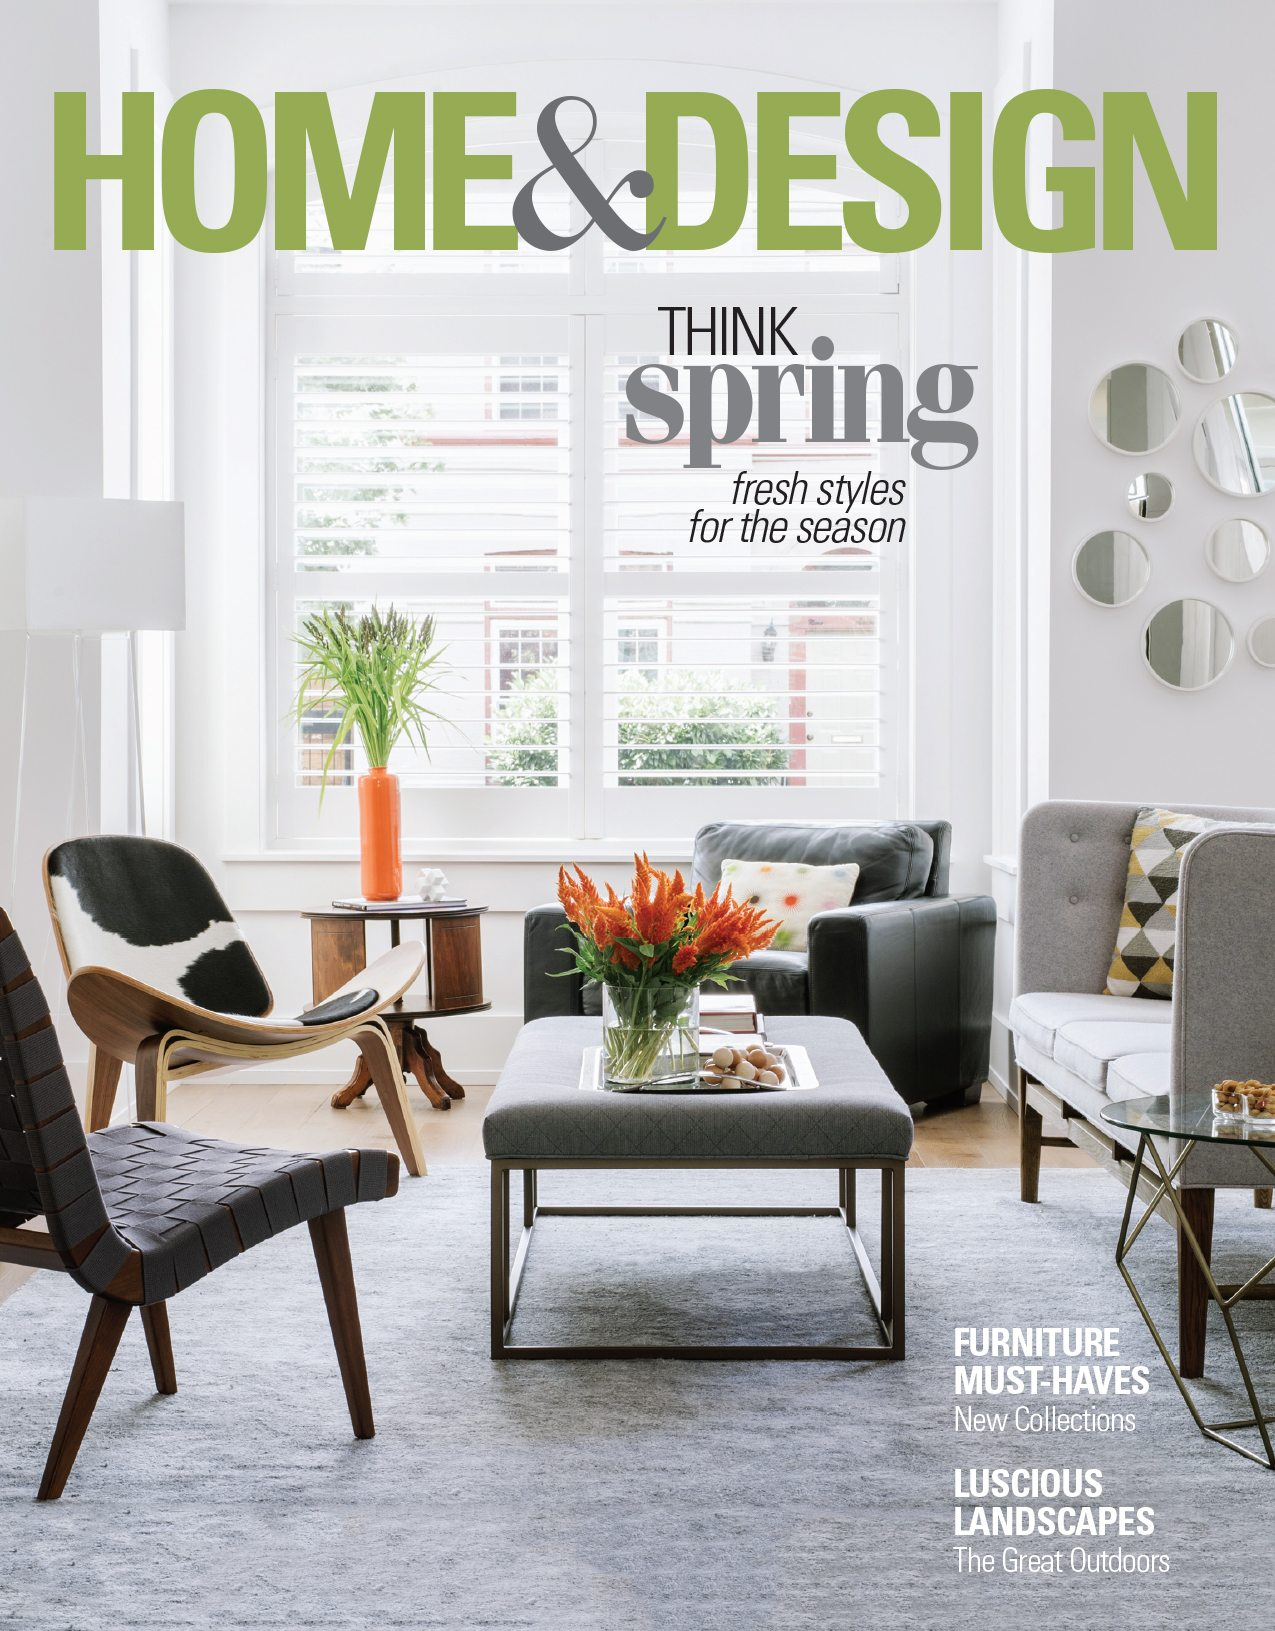 home-and-design-magazine-cover-april-2018.jpg